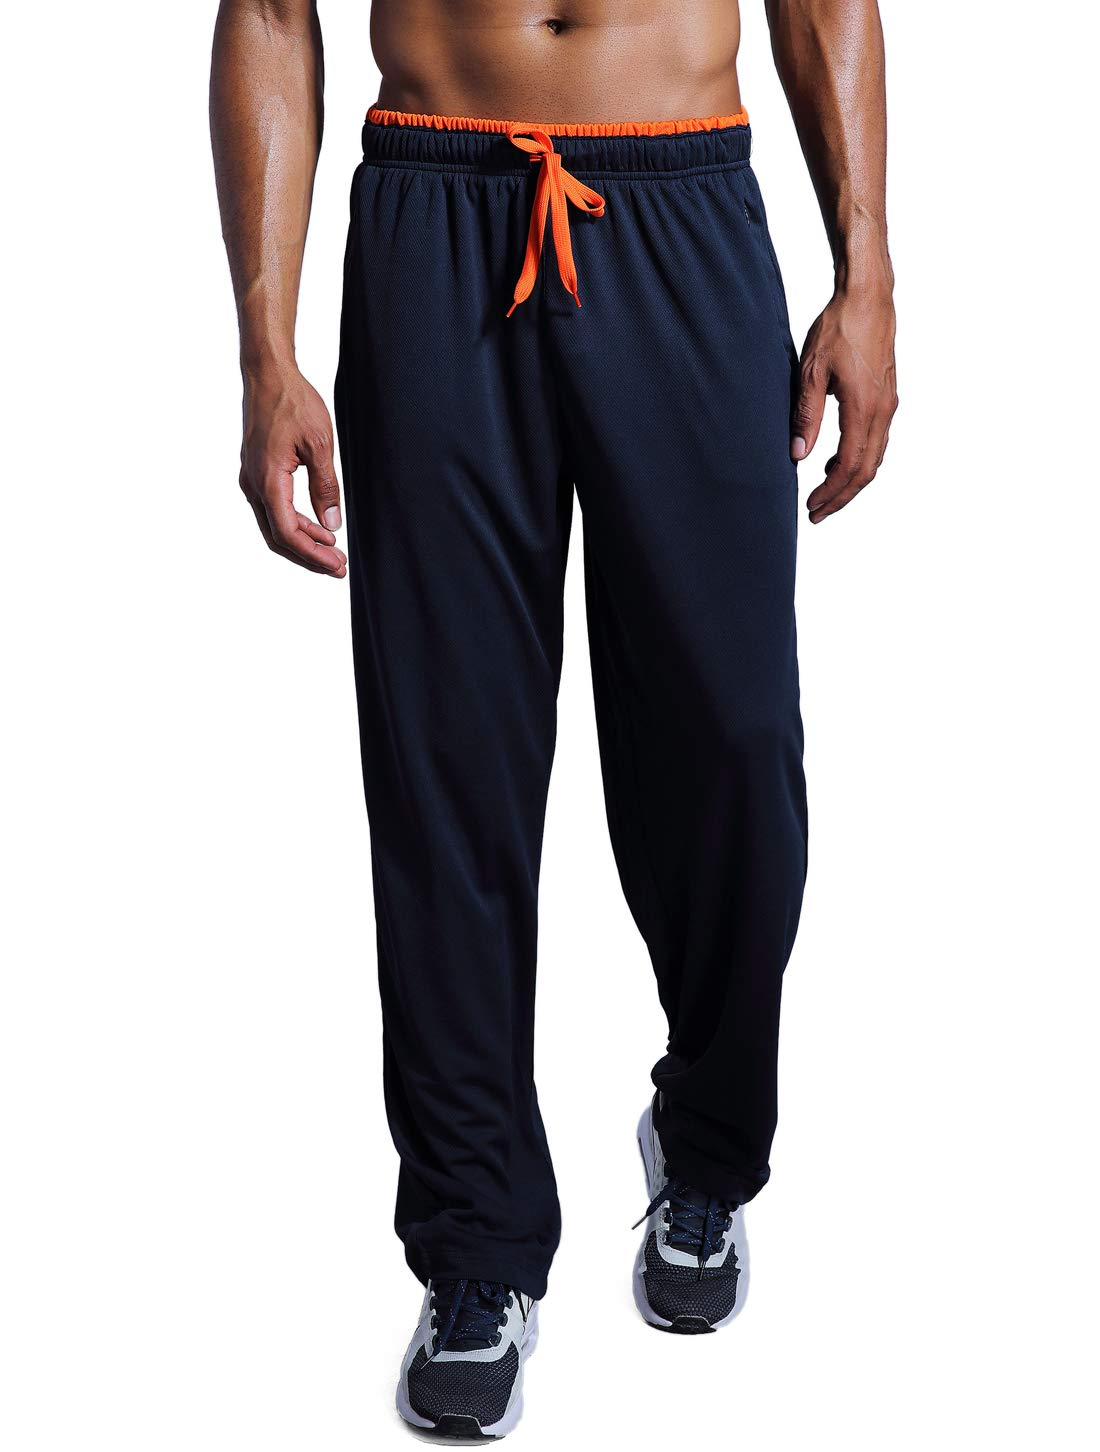 ZENGVEE Men's Sweatpant with Zipper Pockets Open Bottom Athletic Pants for Jogging, Workout, Gym, Running, Training (NavyBlue01,S)